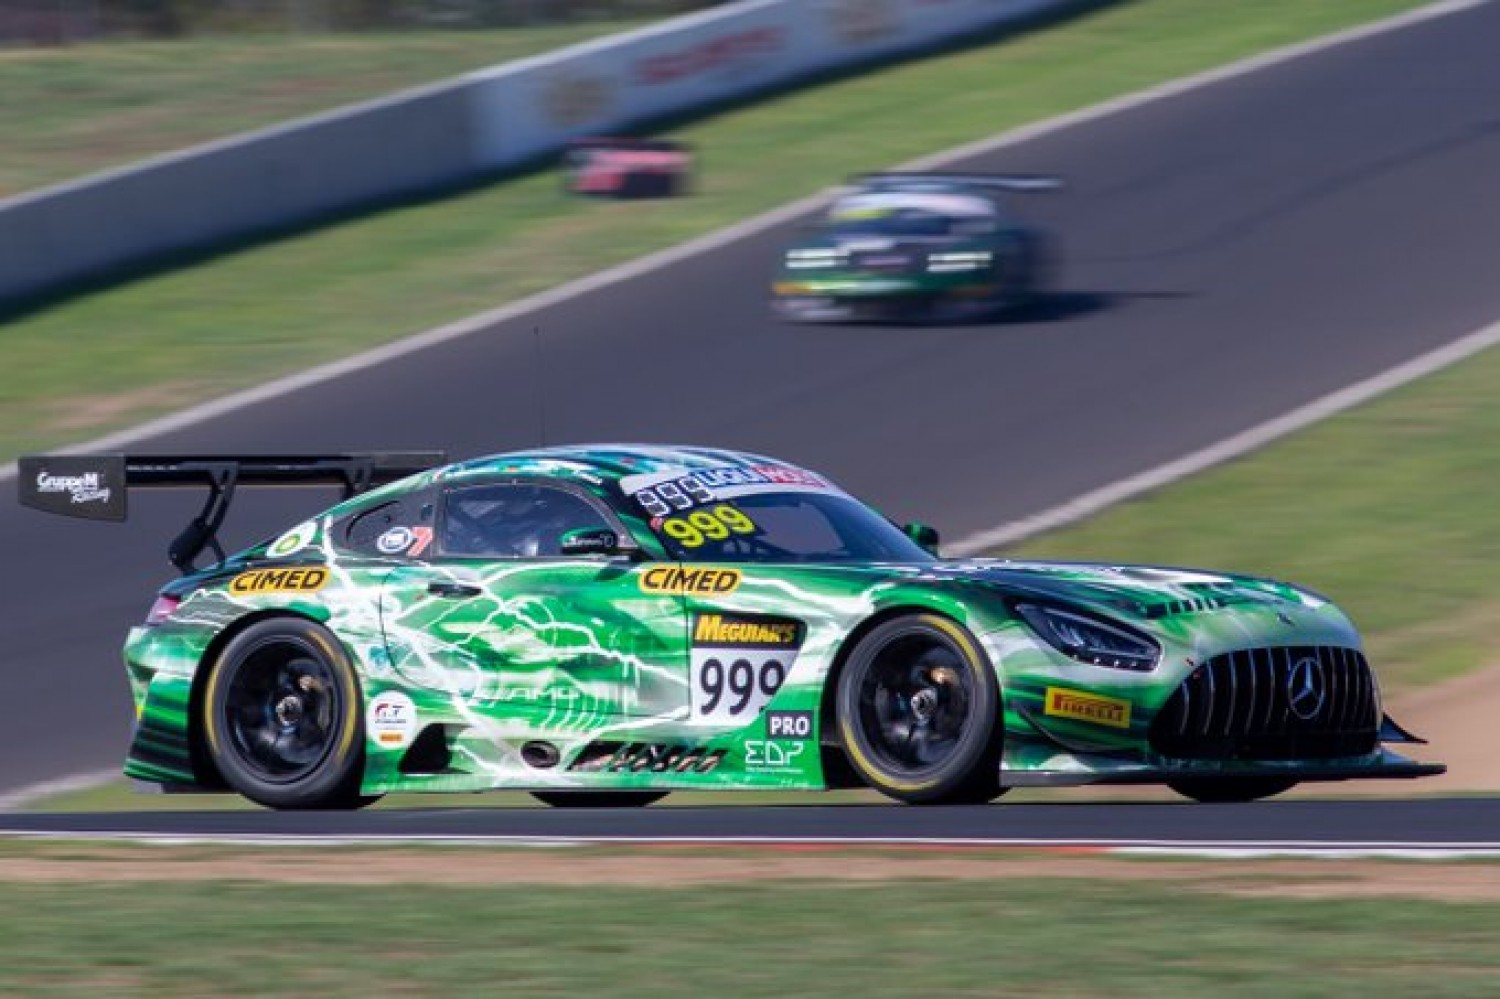 Marciello sends Mercedes-AMG top in opening practice at Bathurst